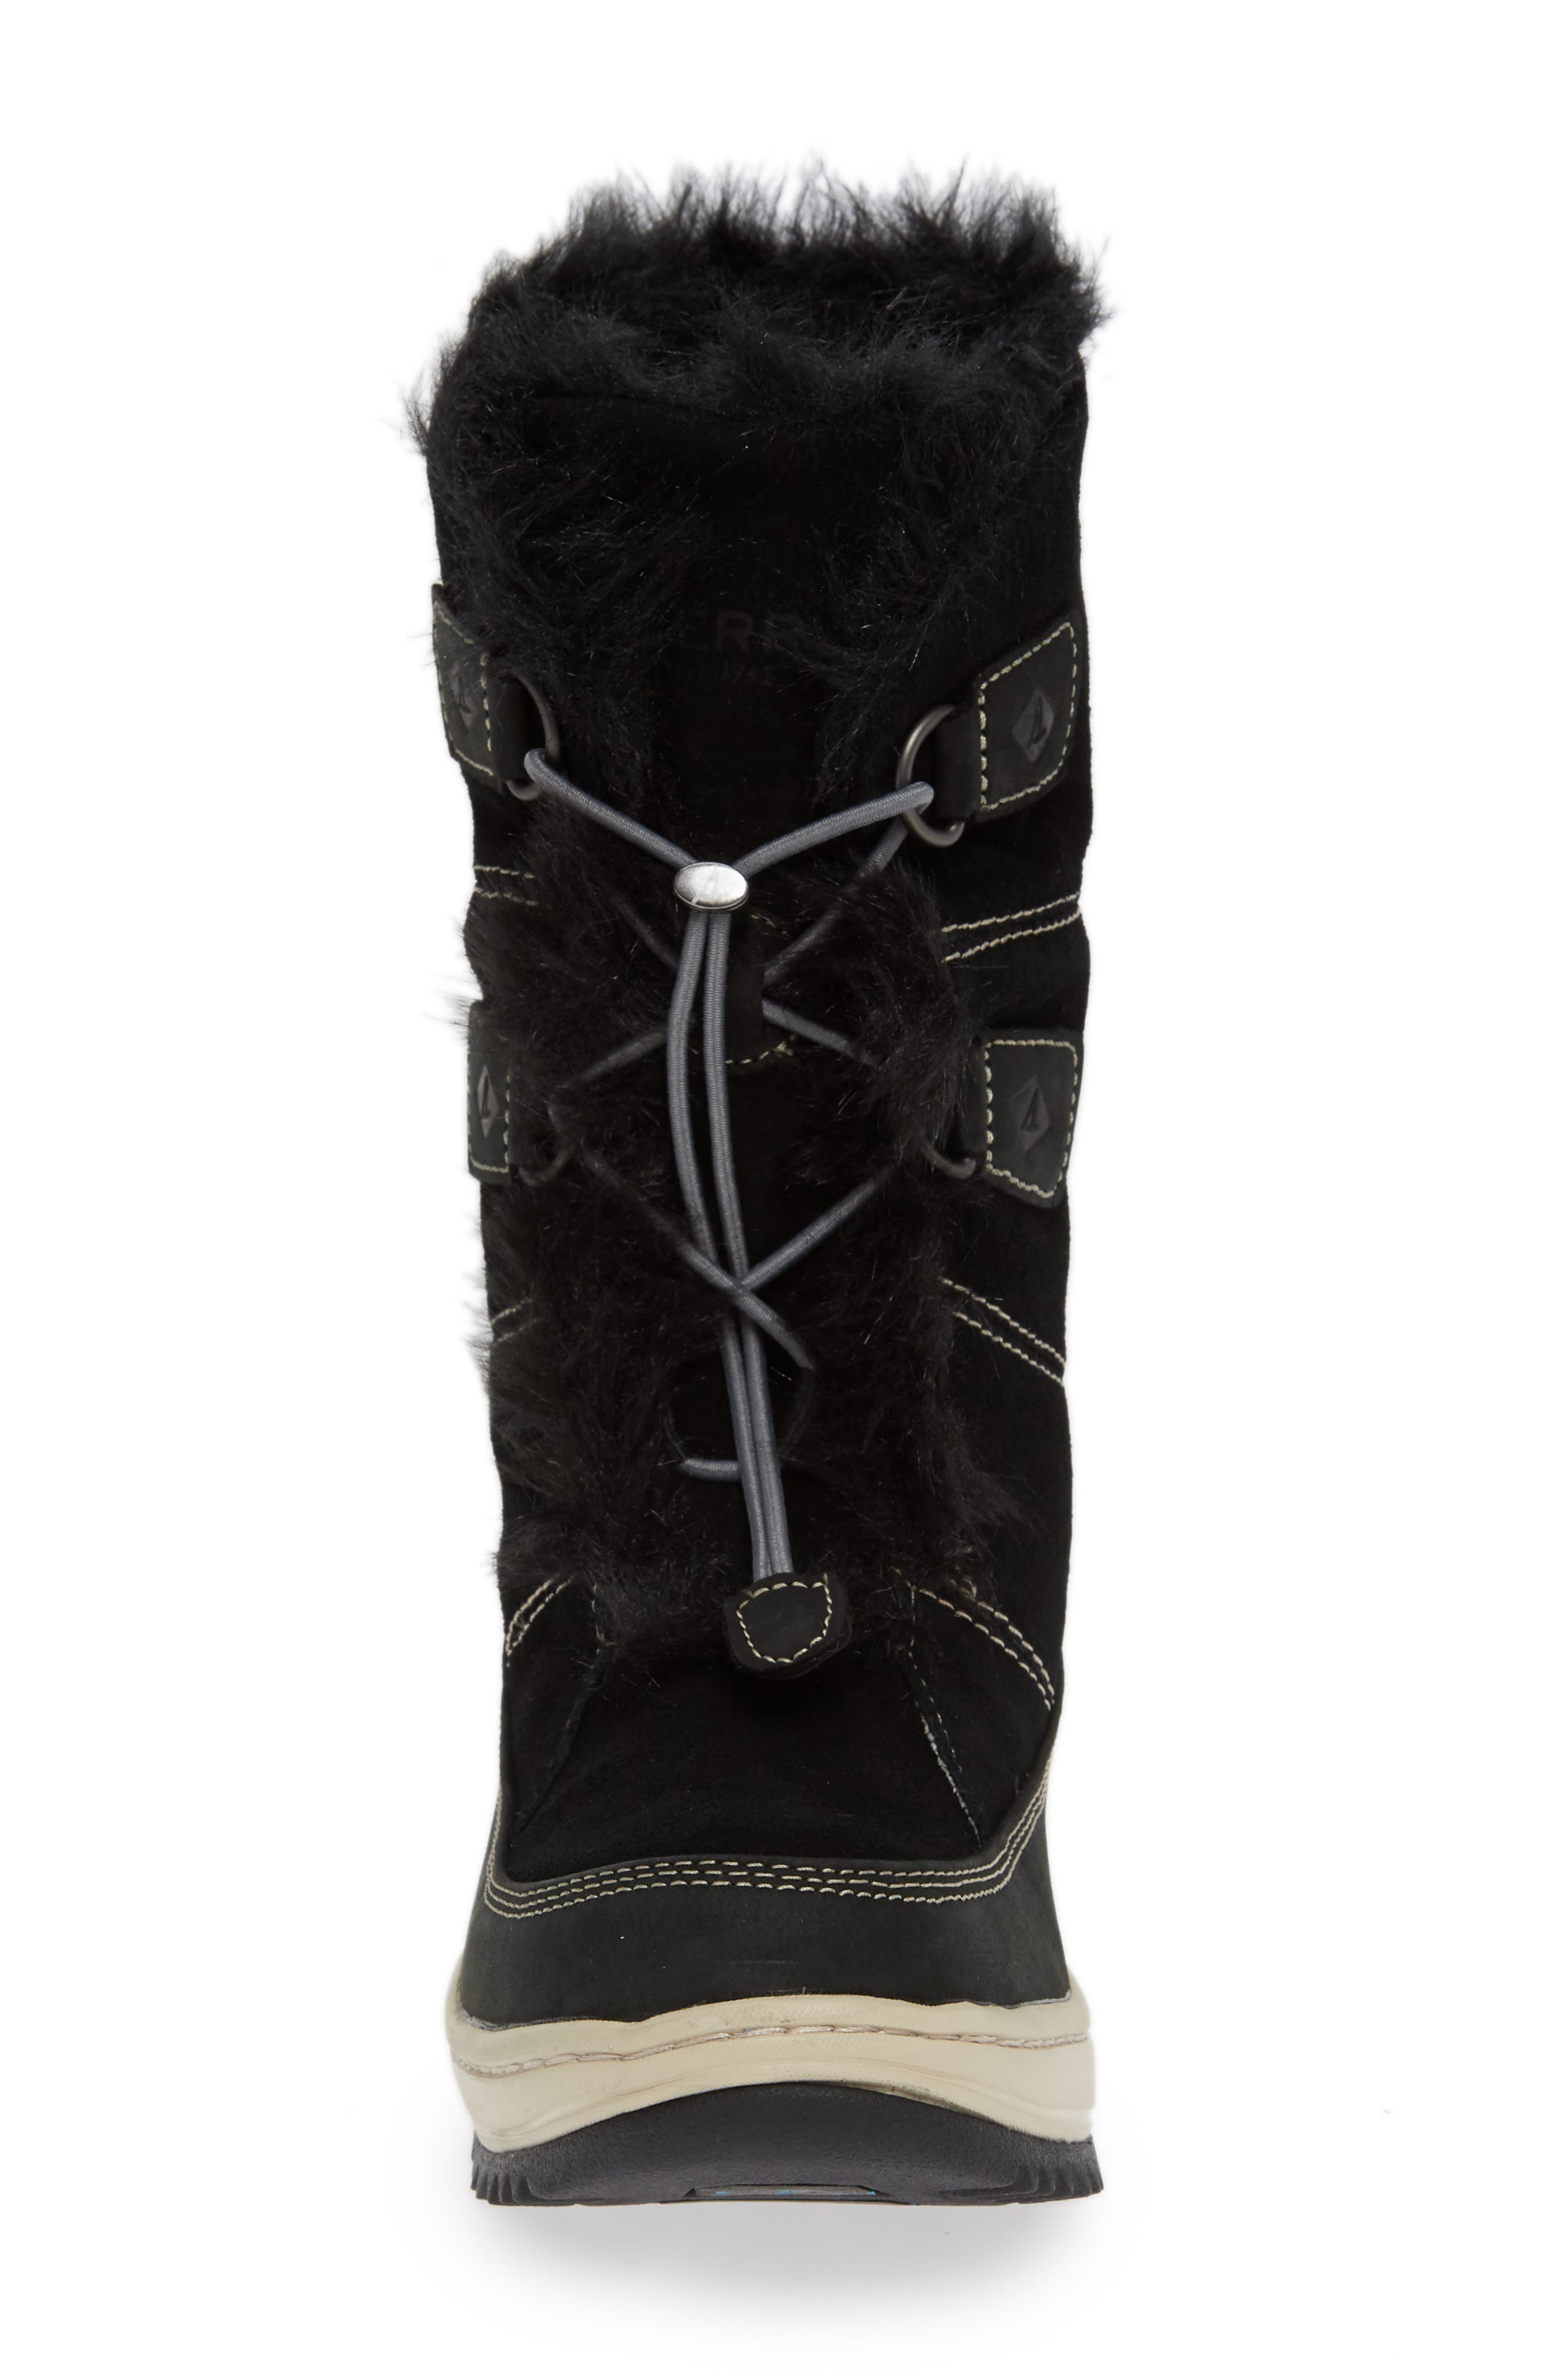 SPERRY,                             Powder Valley Vibram<sup>®</sup> Arctic Grip Waterproof Boot,                             Alternate thumbnail 4, color,                             001